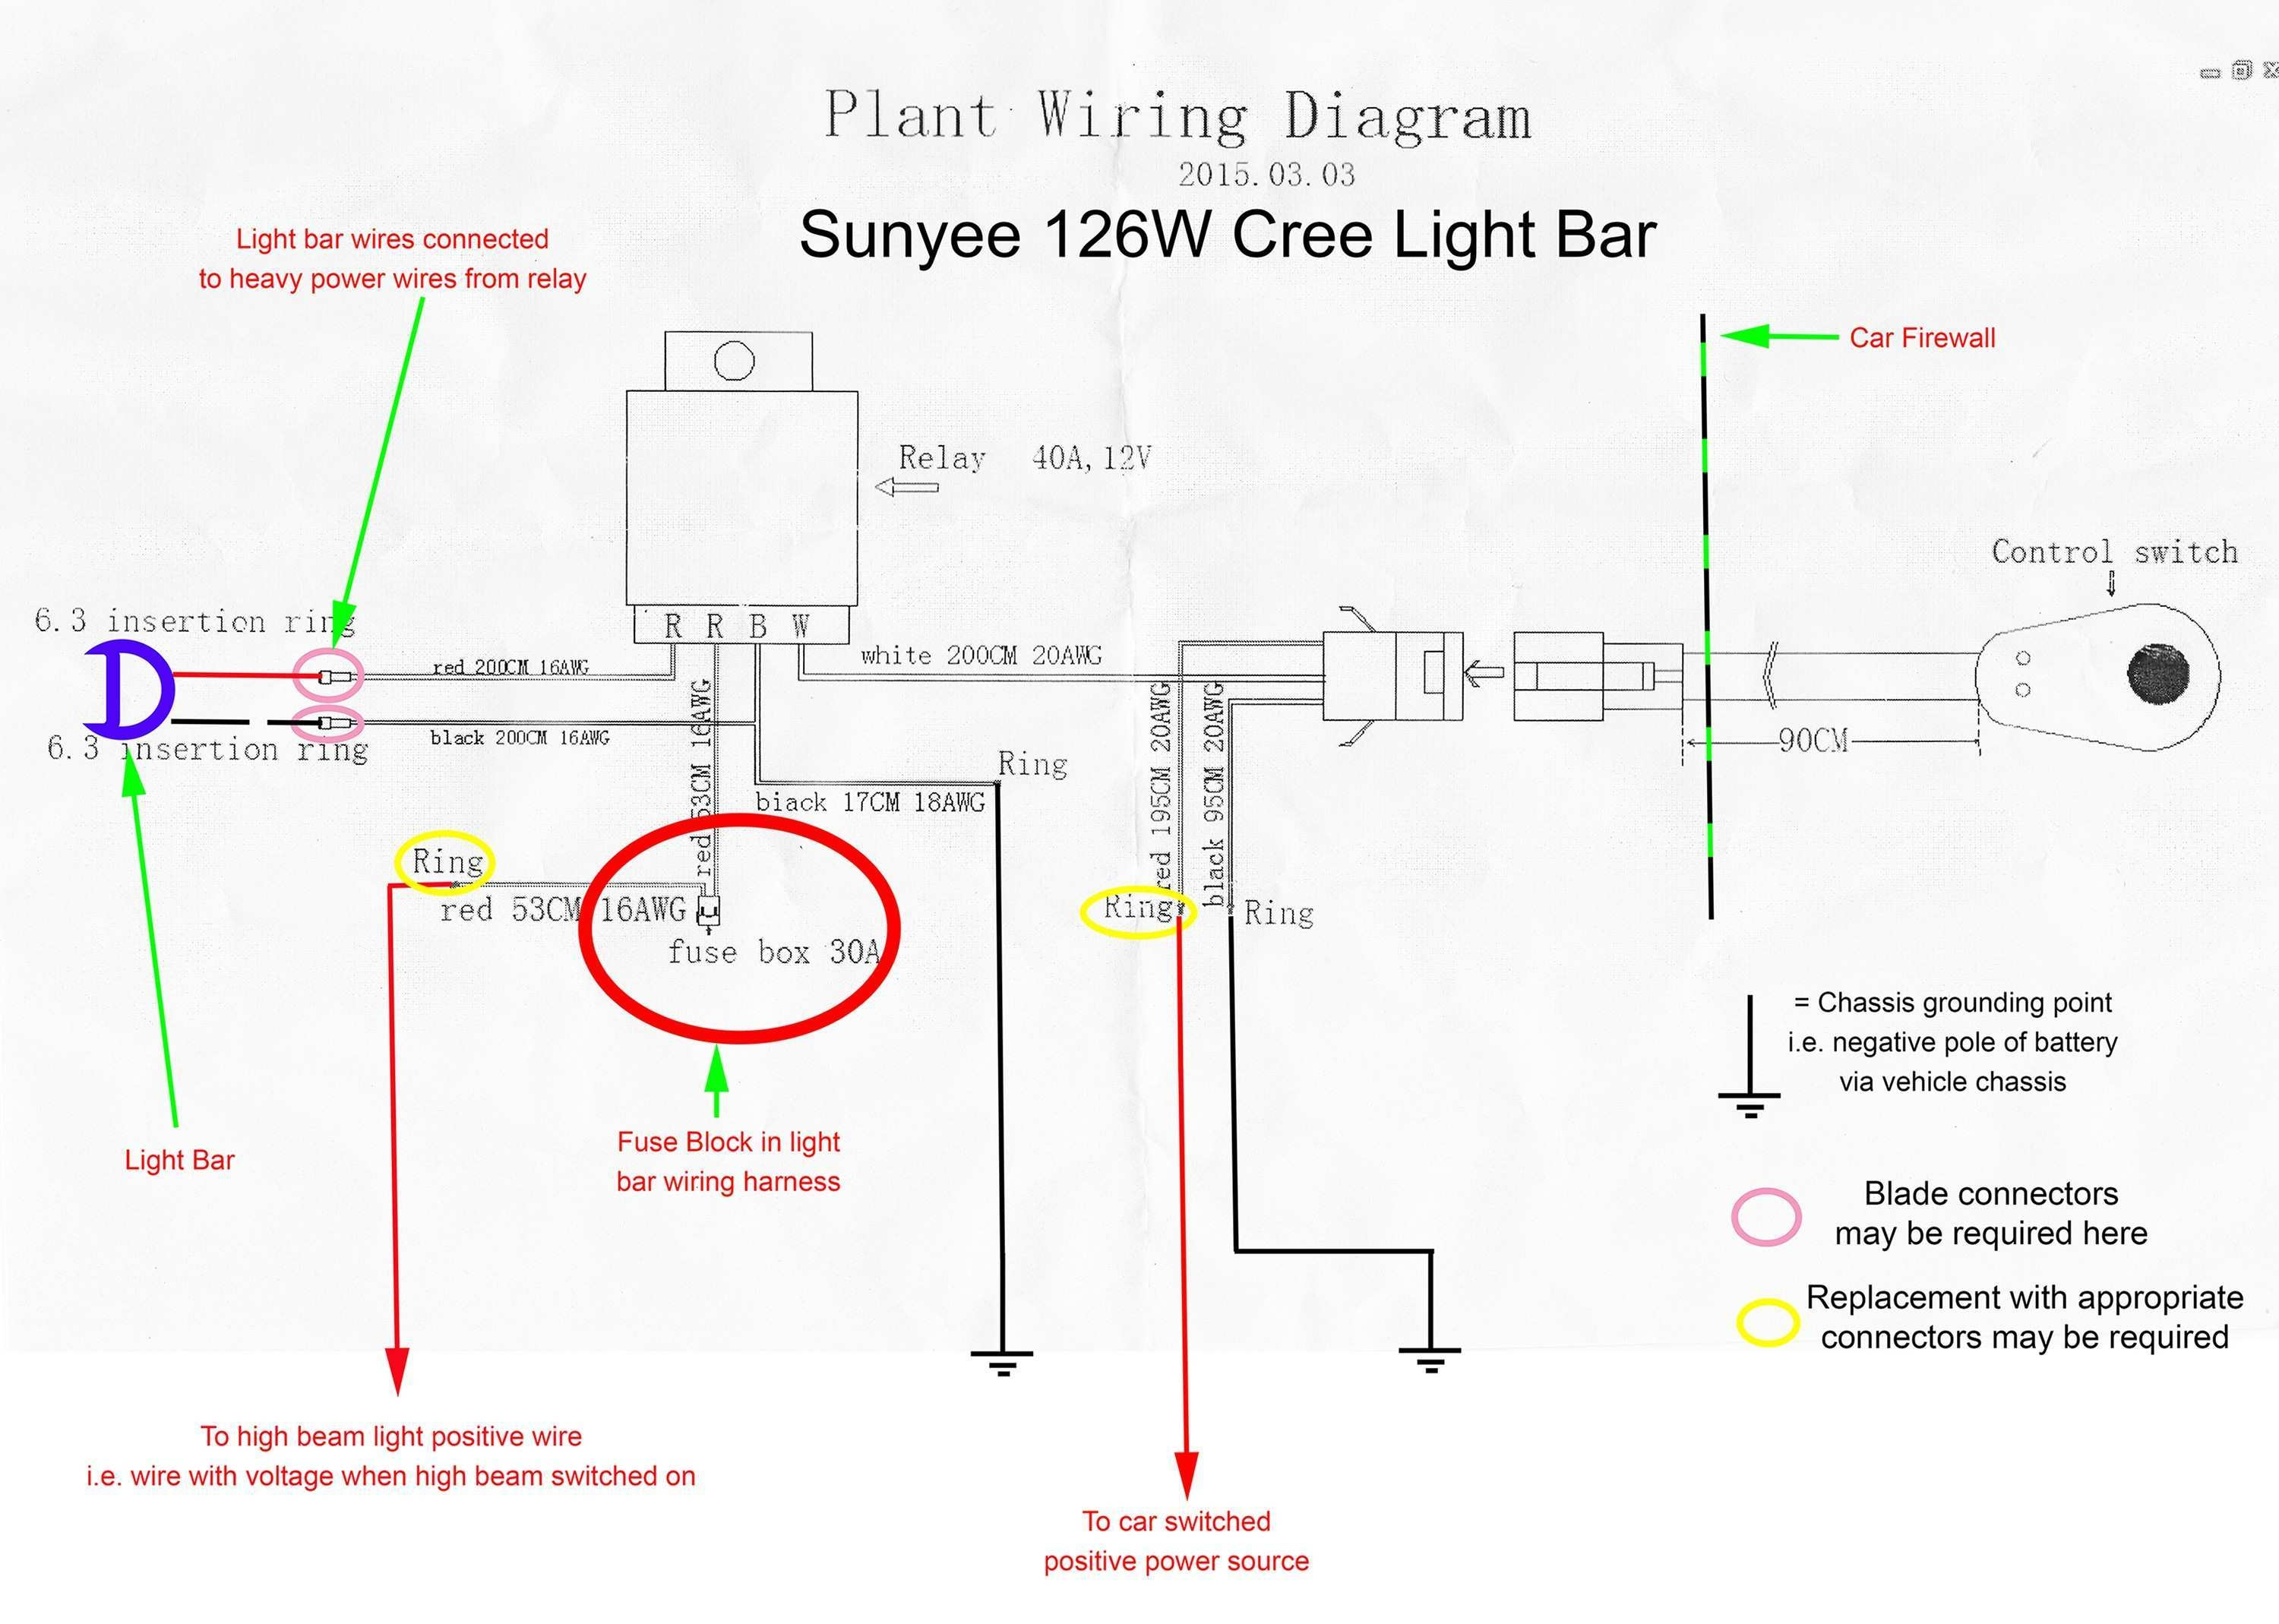 3 wire led tail light wiring diagram Collection-Luxury 3 Wire Led Tail Light Wiring Diagram Diagram 19-l